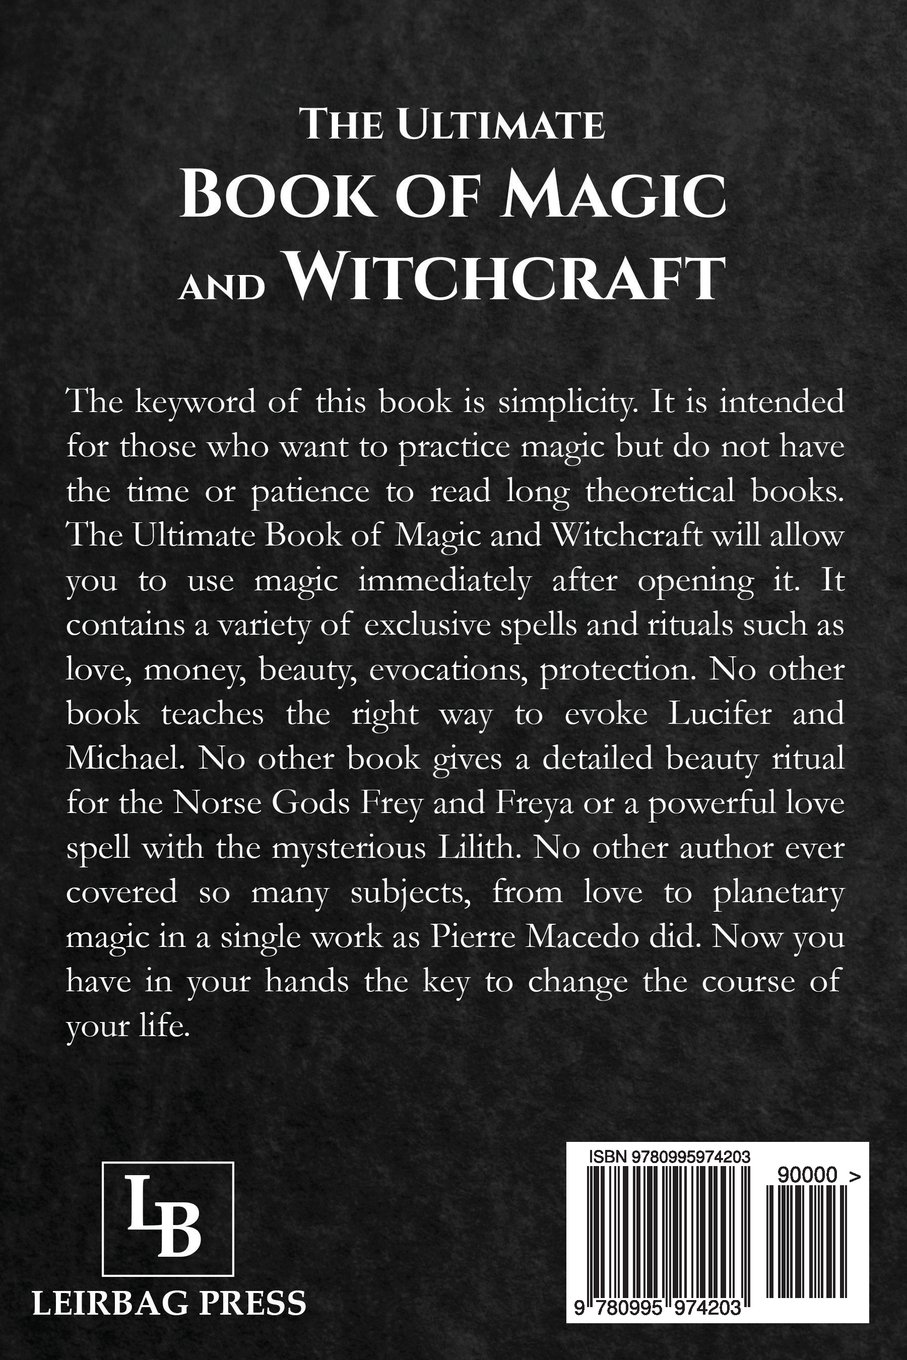 The ultimate book of magic and witchcraft a how to book on the the ultimate book of magic and witchcraft a how to book on the practice of magic rituals and spells pierre macedo 9780995974203 amazon books fandeluxe Image collections